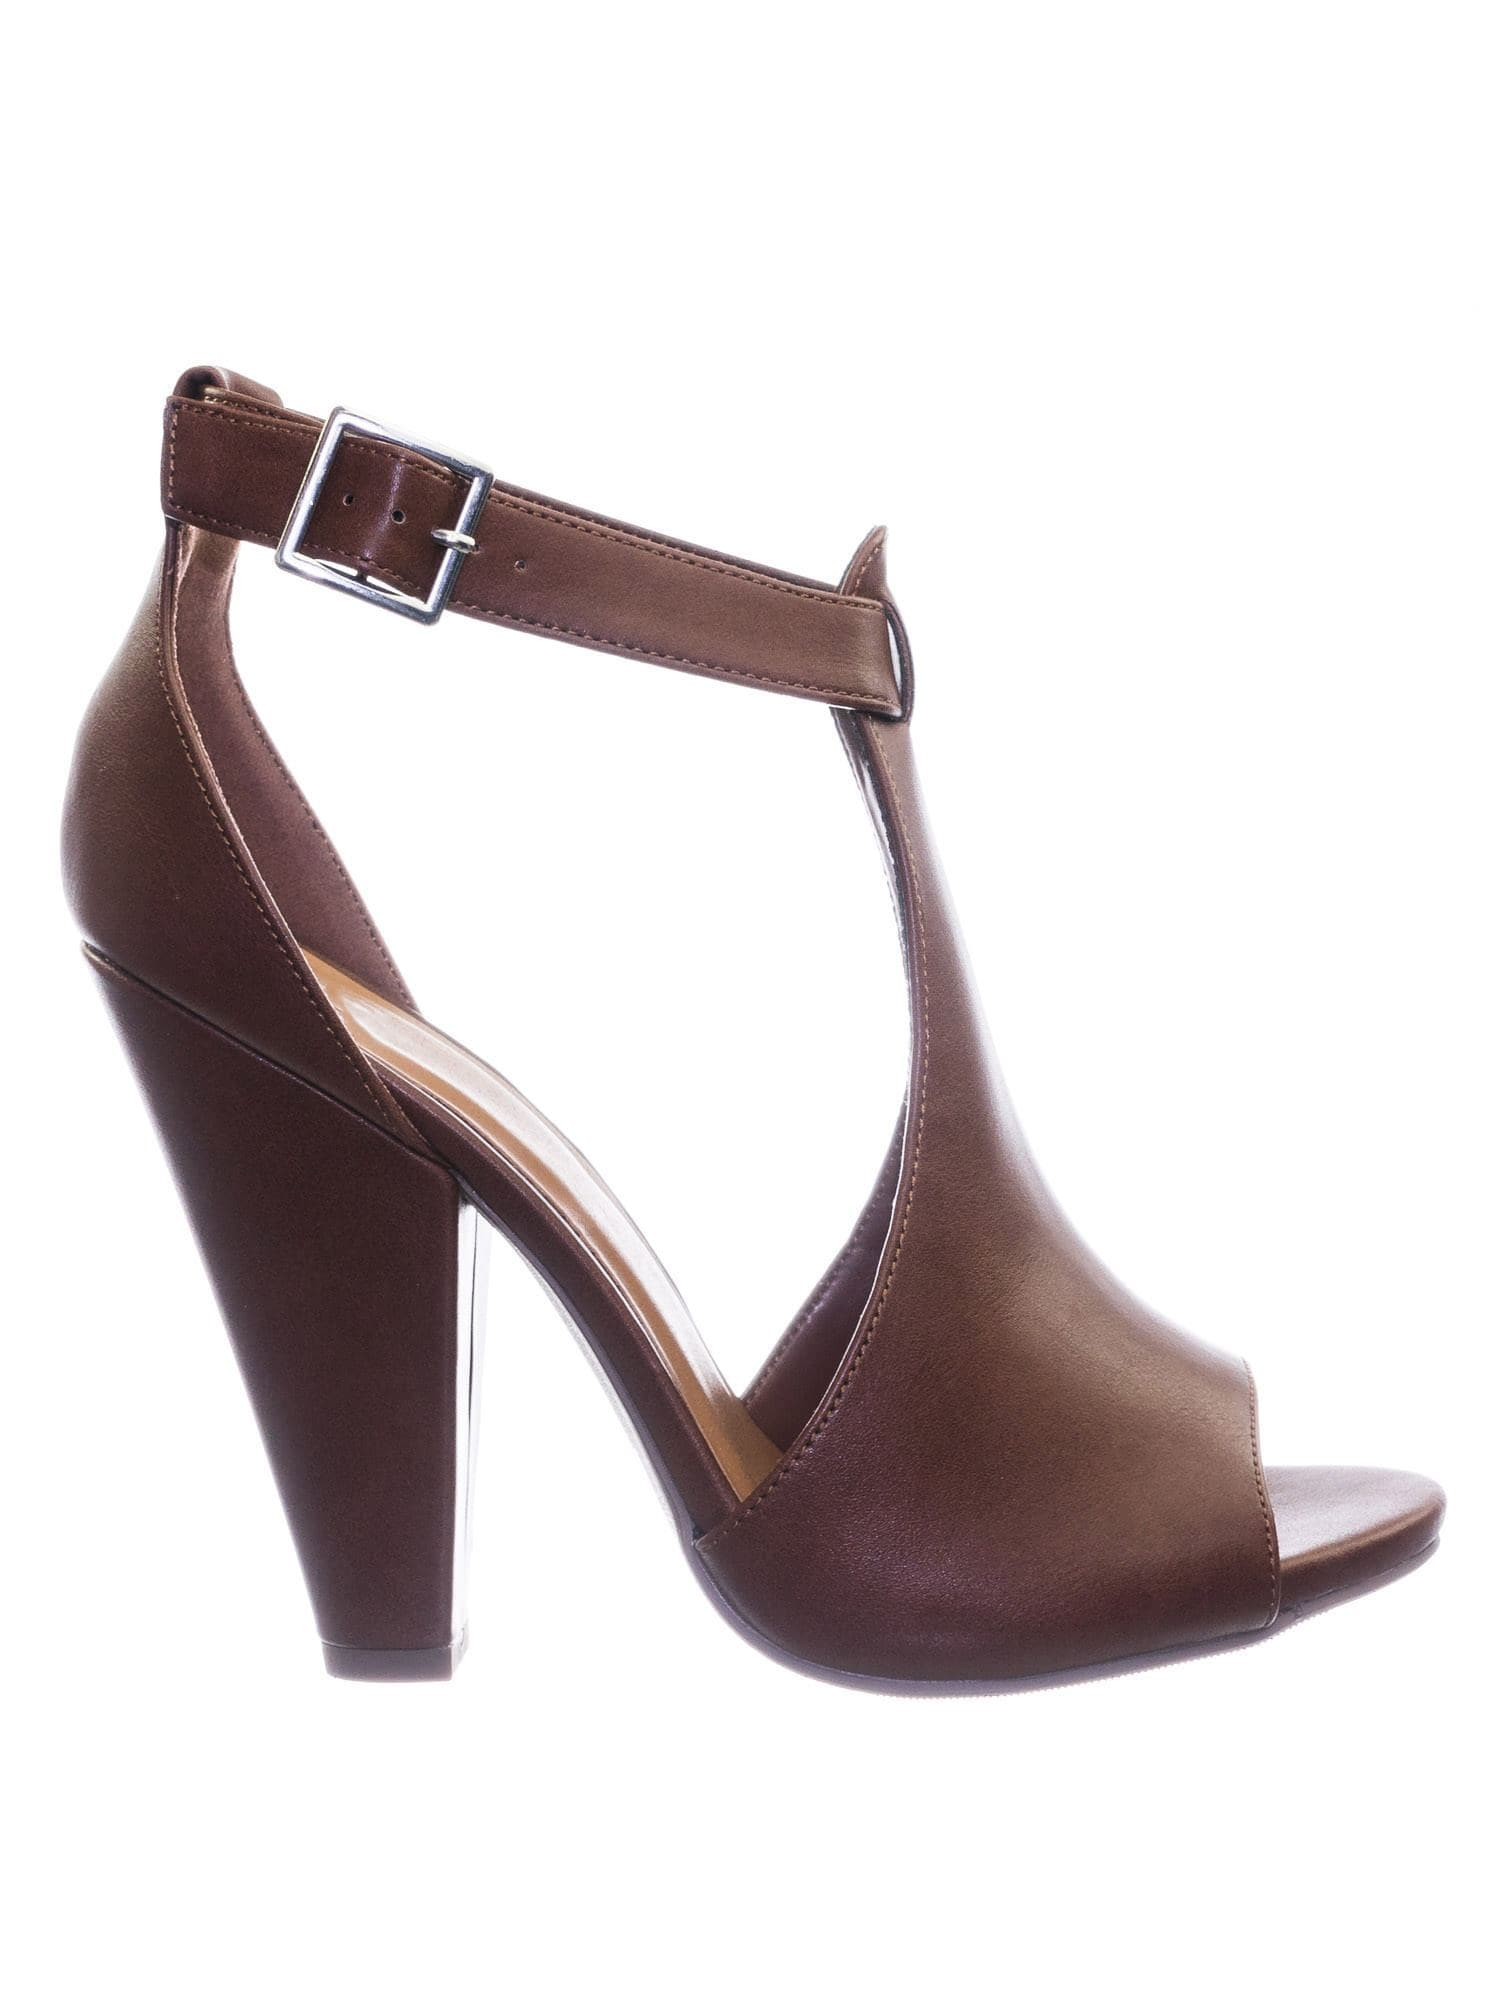 Speakup CogPu Taper Block Heel Peep Toe Double Open Shank d'Orsay Pump w Ankle Strap